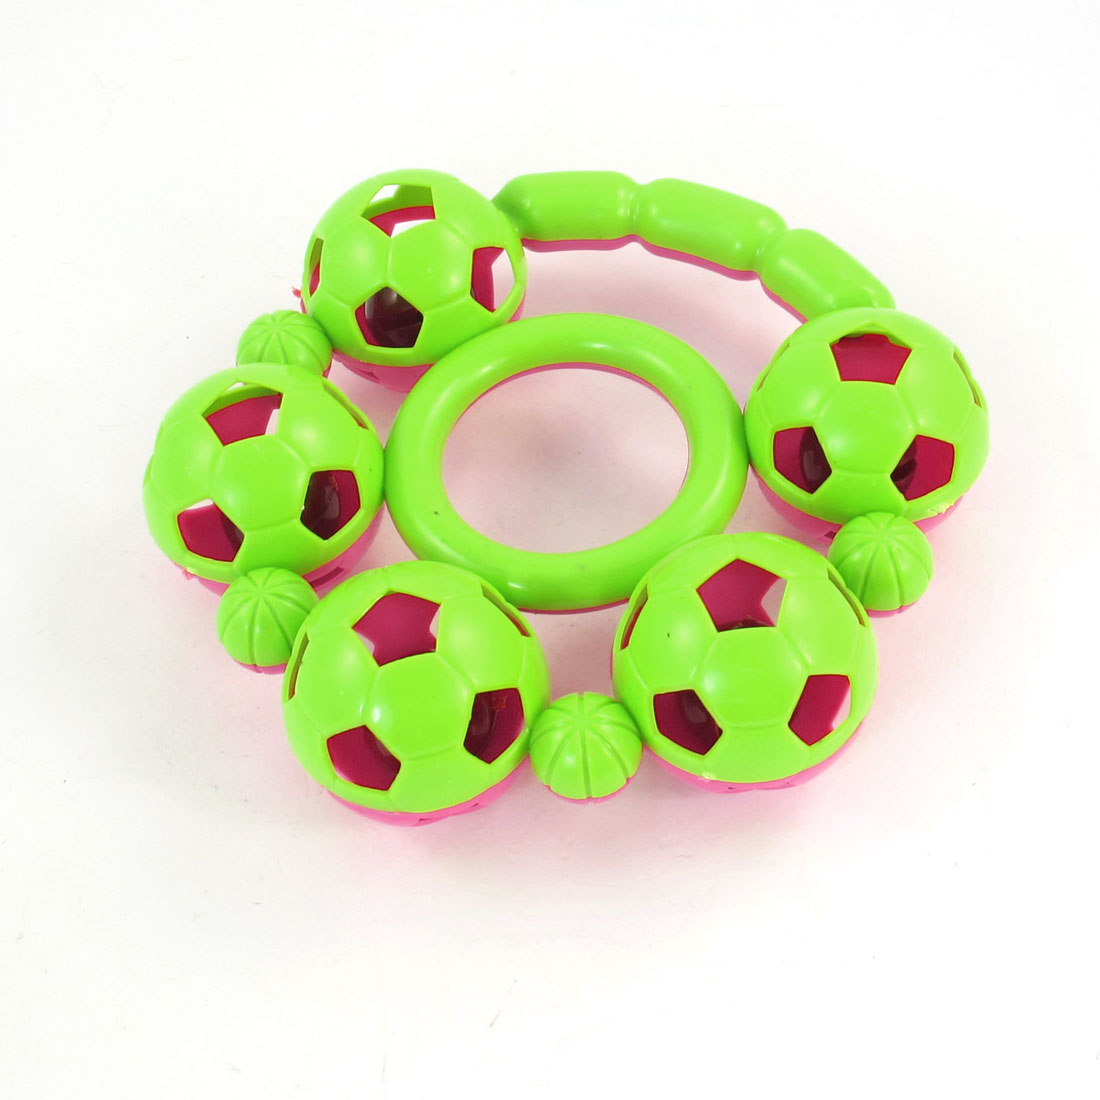 Pink Light Green Plastic Hand Shaking Bell Rattle Toy for Babies